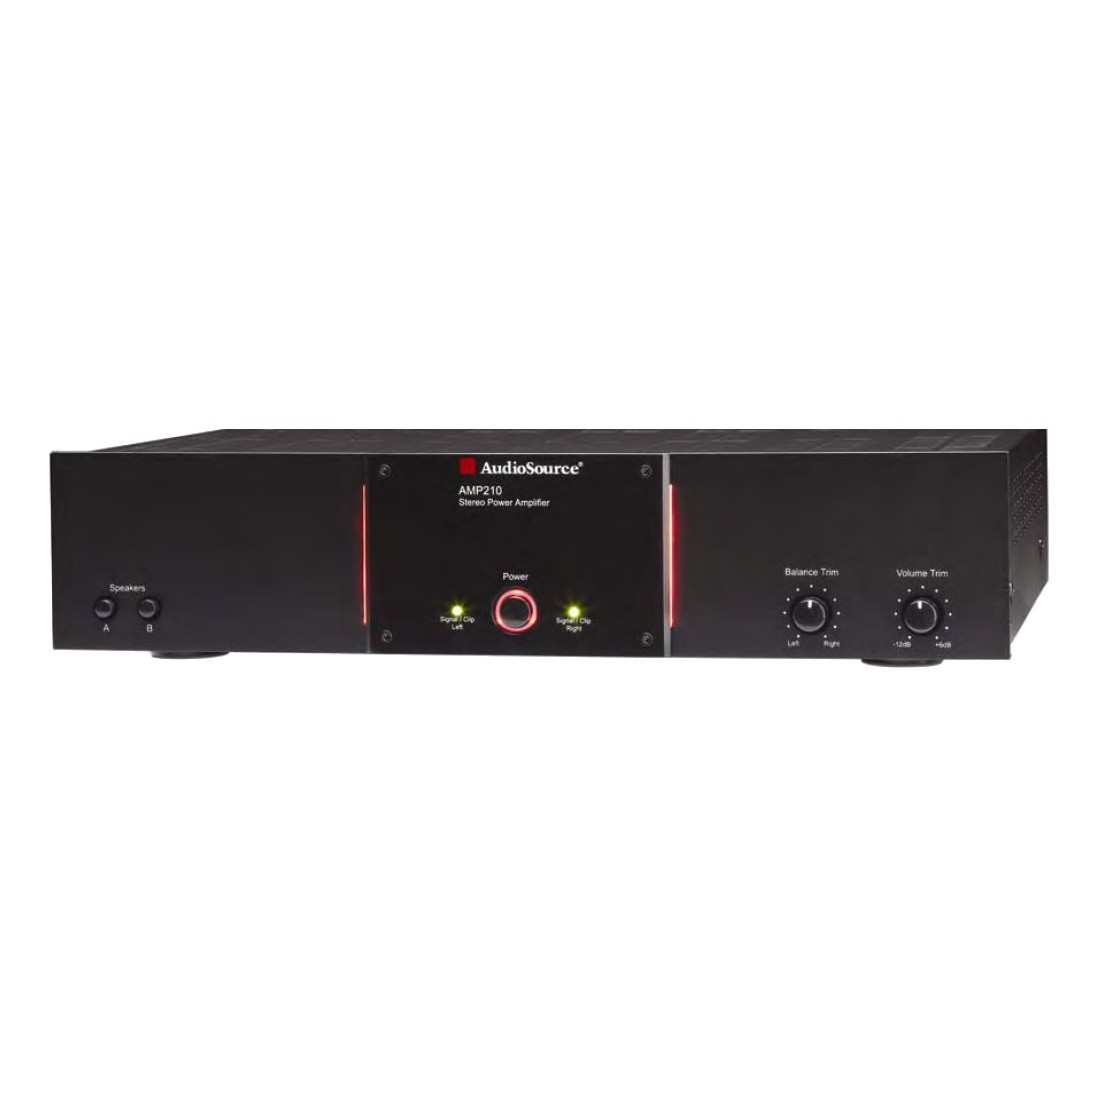 AudioSource AMP210VS 2-Channel Power Amplifier with 100 Watts Per Channel by AudioSource